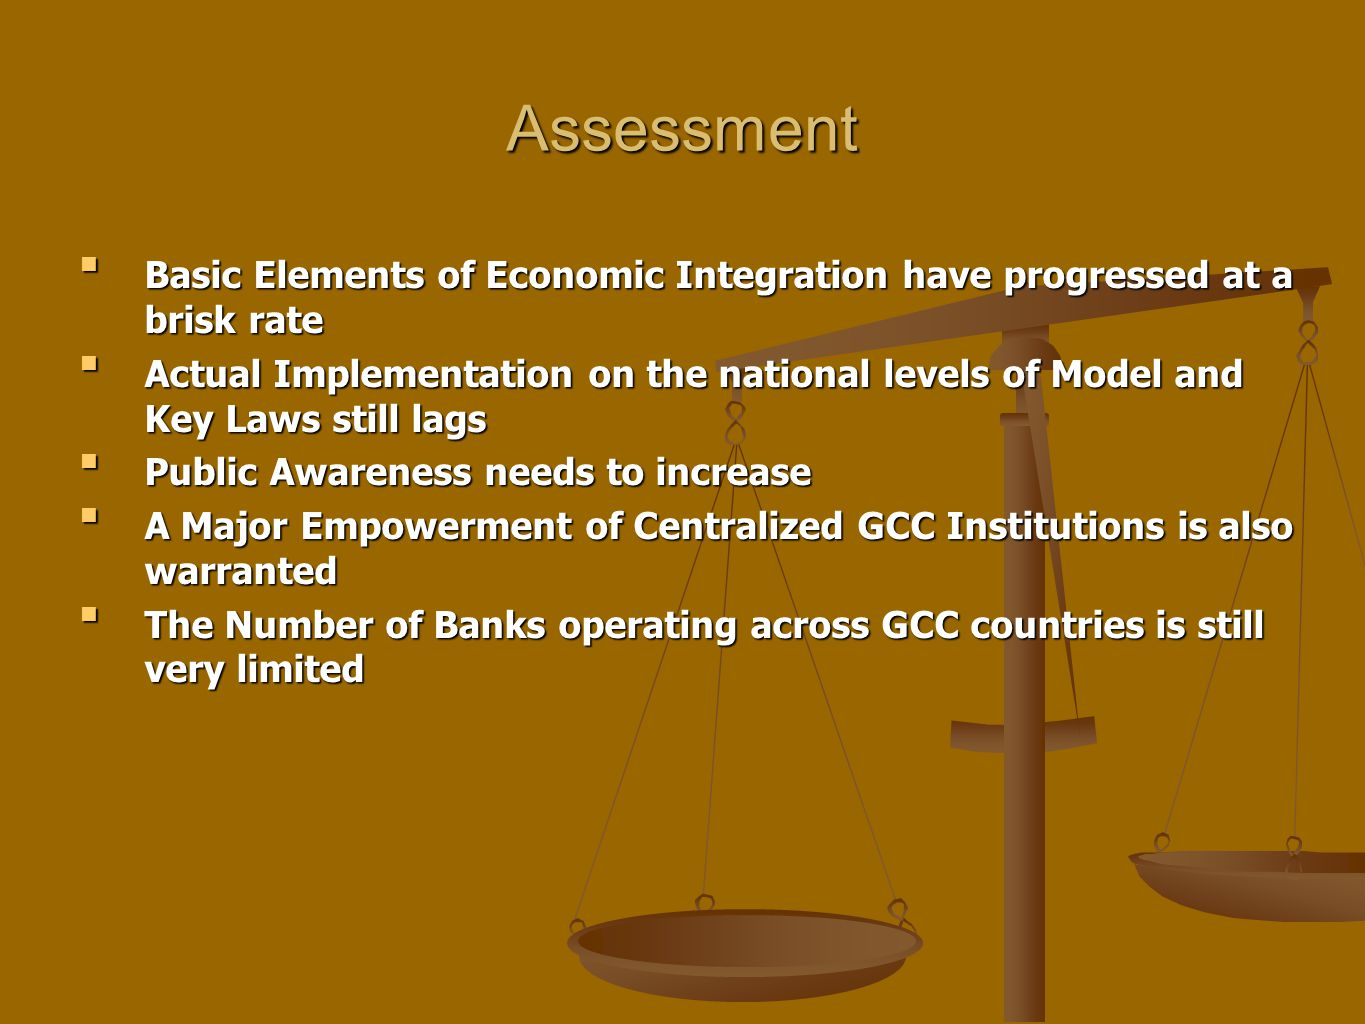 Assessment Basic Elements of Economic Integration have progressed at a brisk rateBasic Elements of Economic Integration have progressed at a brisk rat